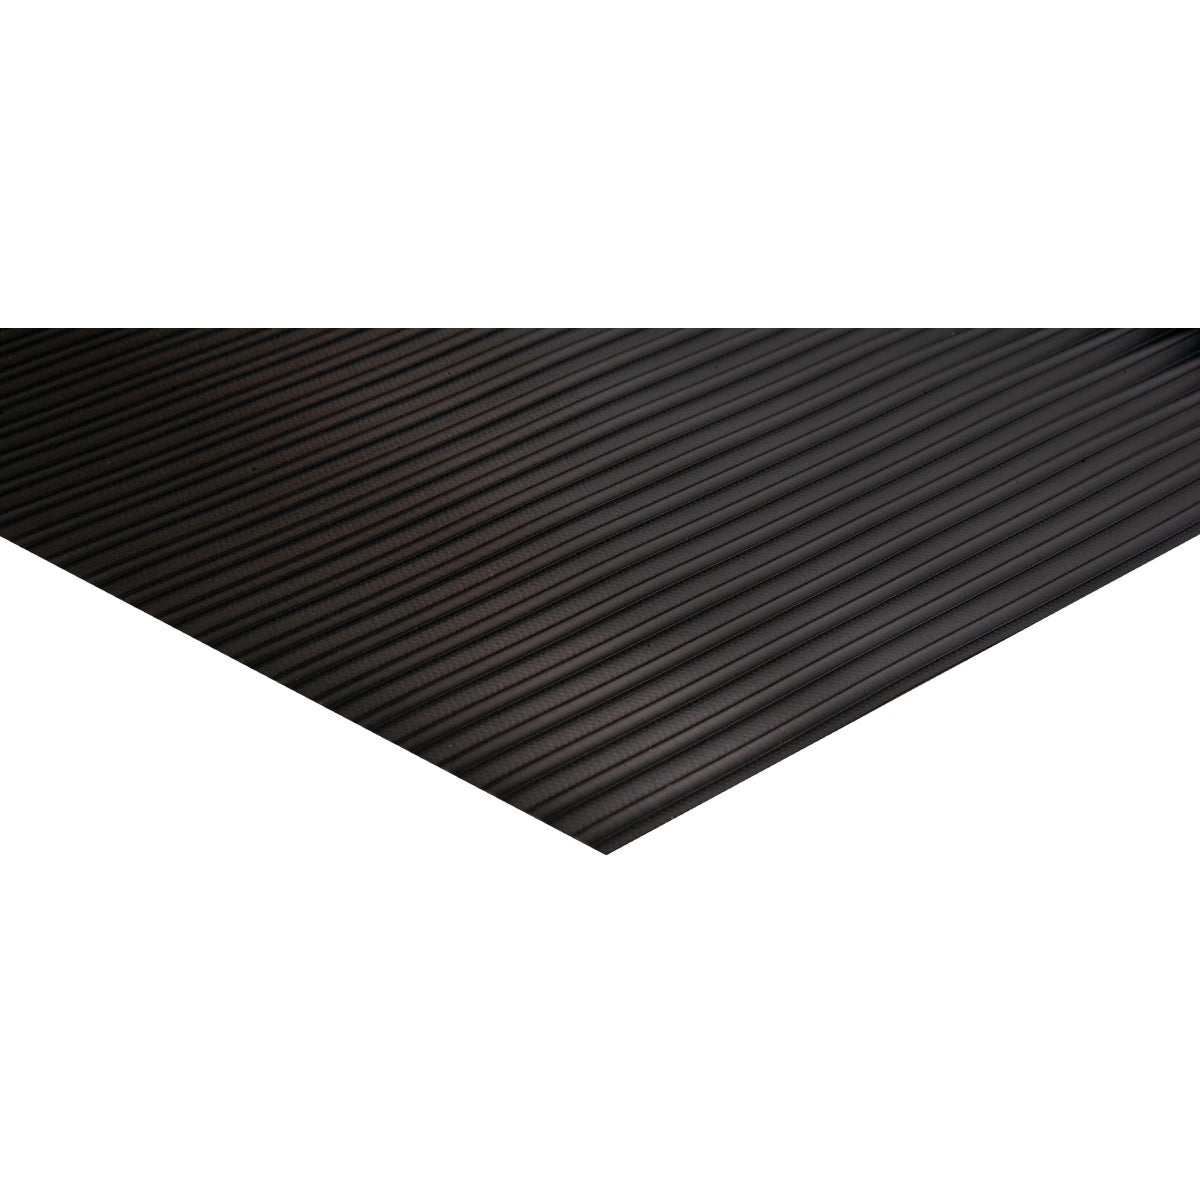 27X75 BLK VINYL MATTING - VRI2705T by Dennis W J & Co